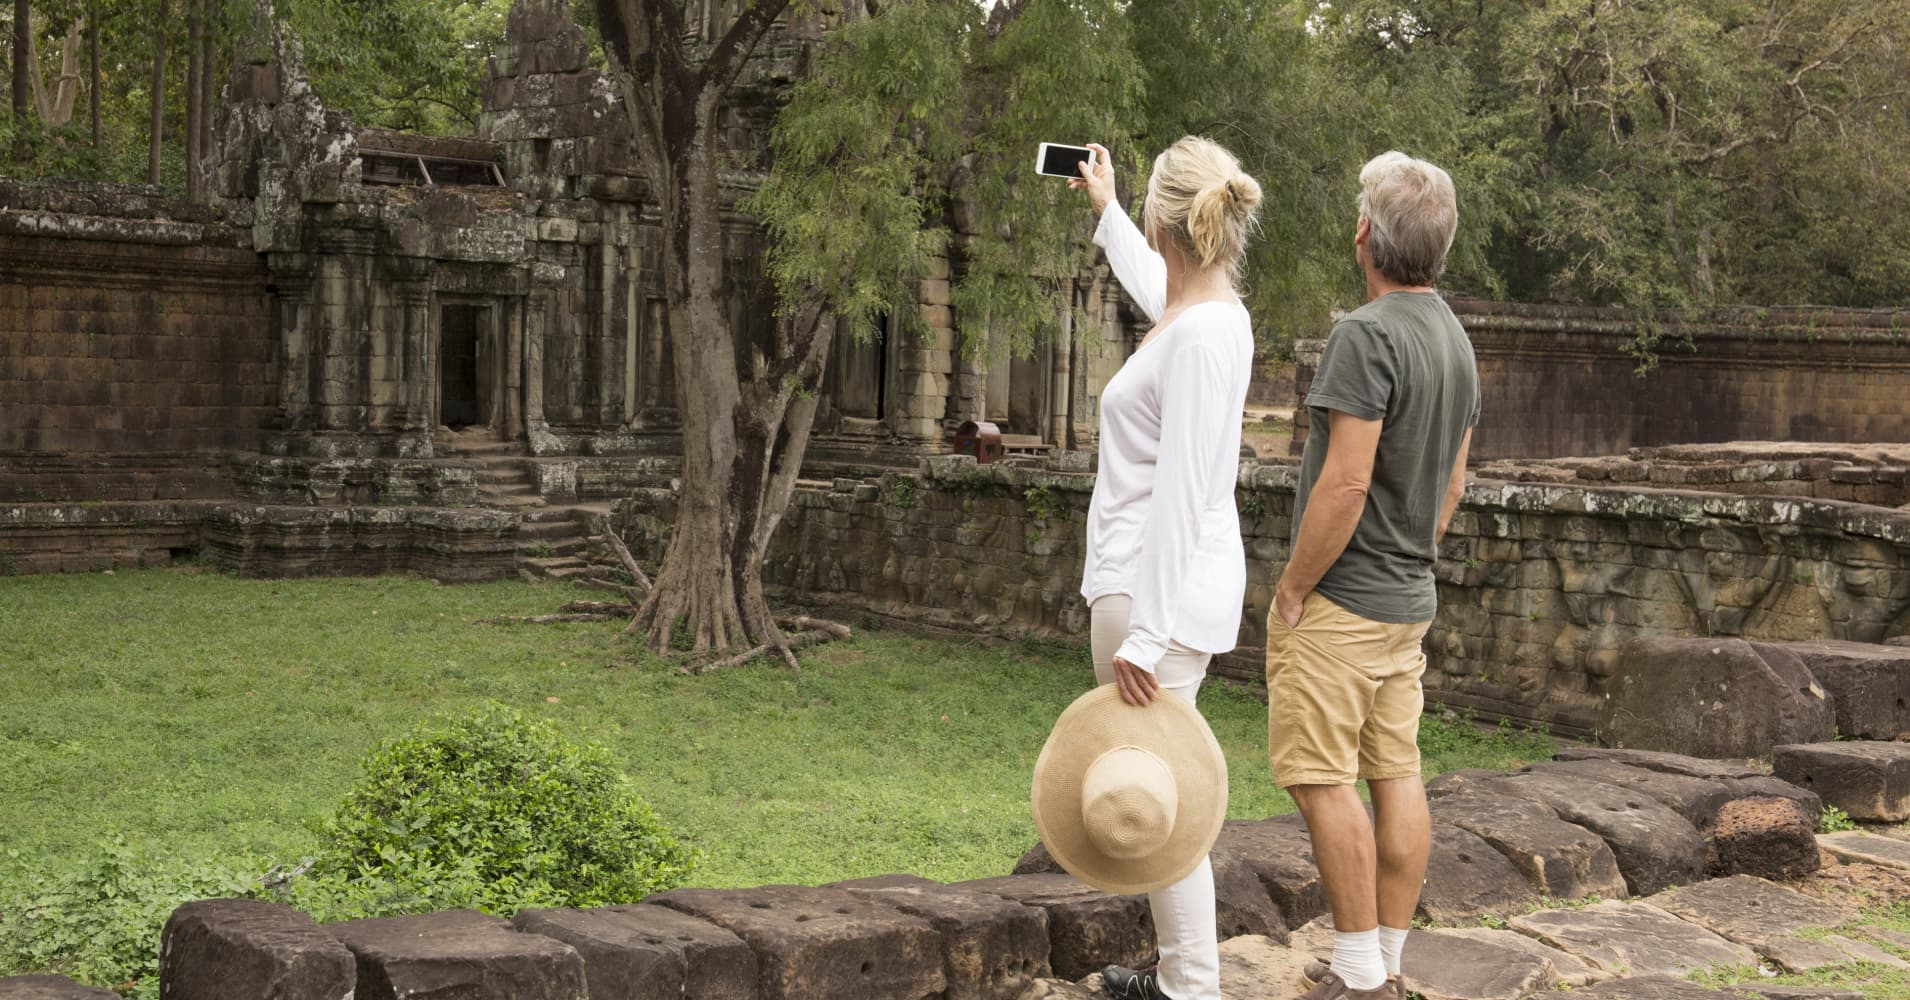 Mature couple take photo of temples and jungle, Angkor Wat